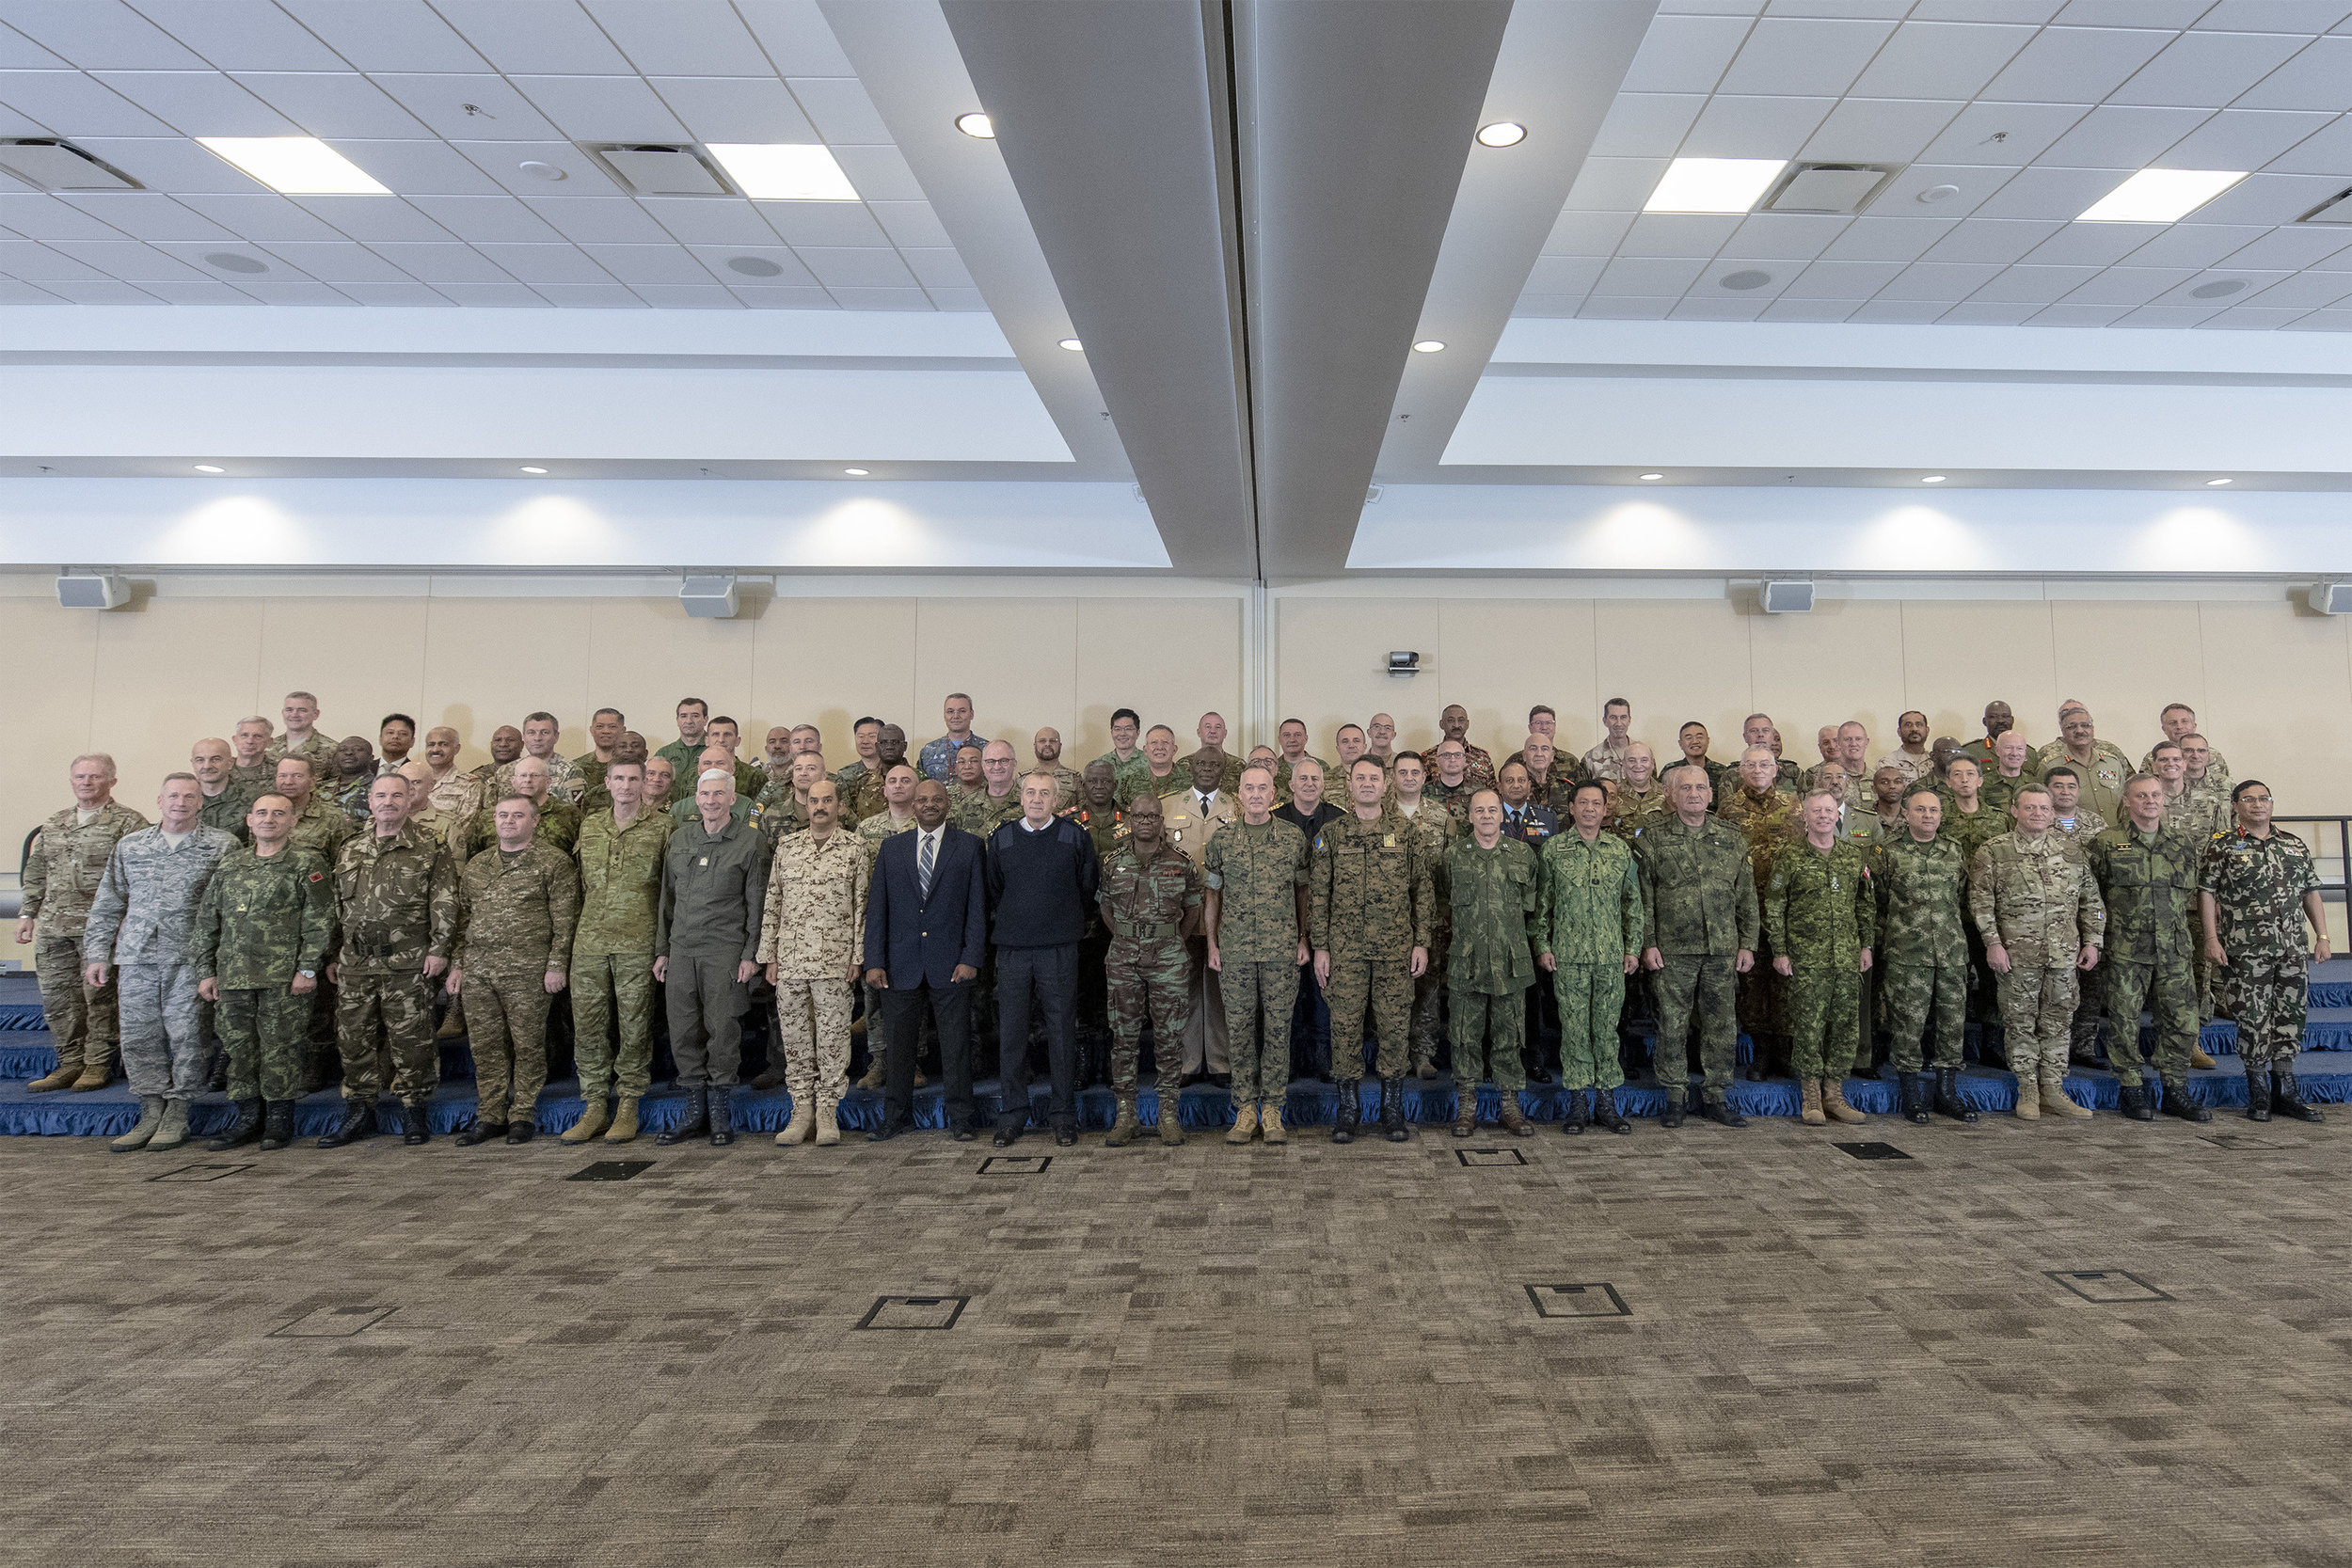 The U.S. Chairman of the Joint Chiefs of Staff Gen. Joe Dunford hosted over 80 chiefs of defense at Joint Base Andrews, Maryland, to discuss countering violent extremist organizations. Photo by U.S. Navy Petty Officer 1st Class Dominique A. Pineiro